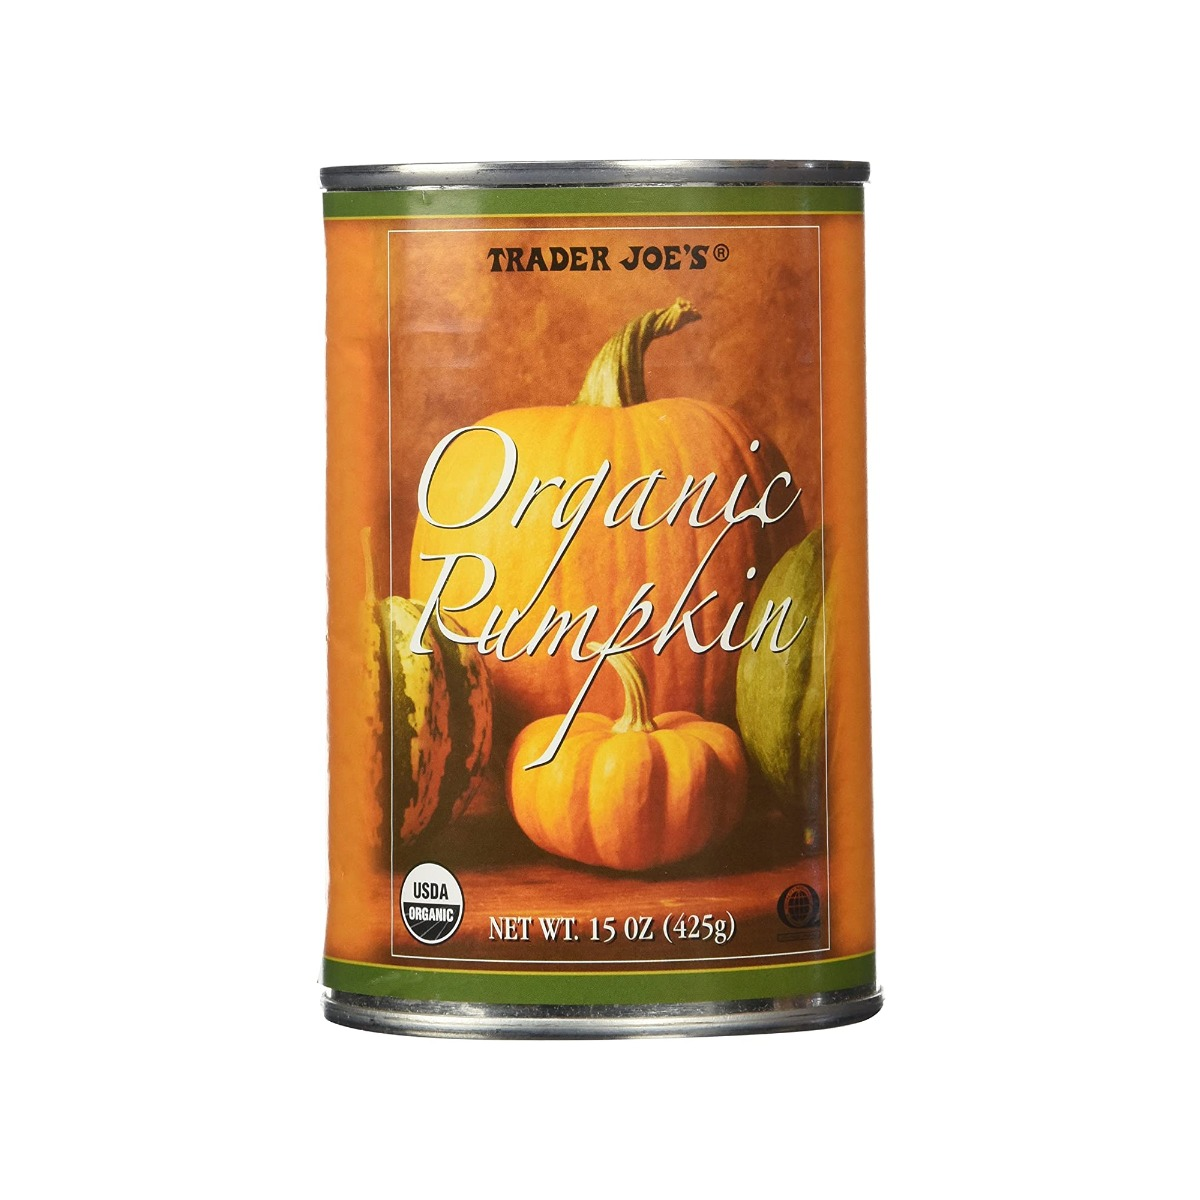 Trader Joe's Organic Pumpkin(1 Can) 15oz